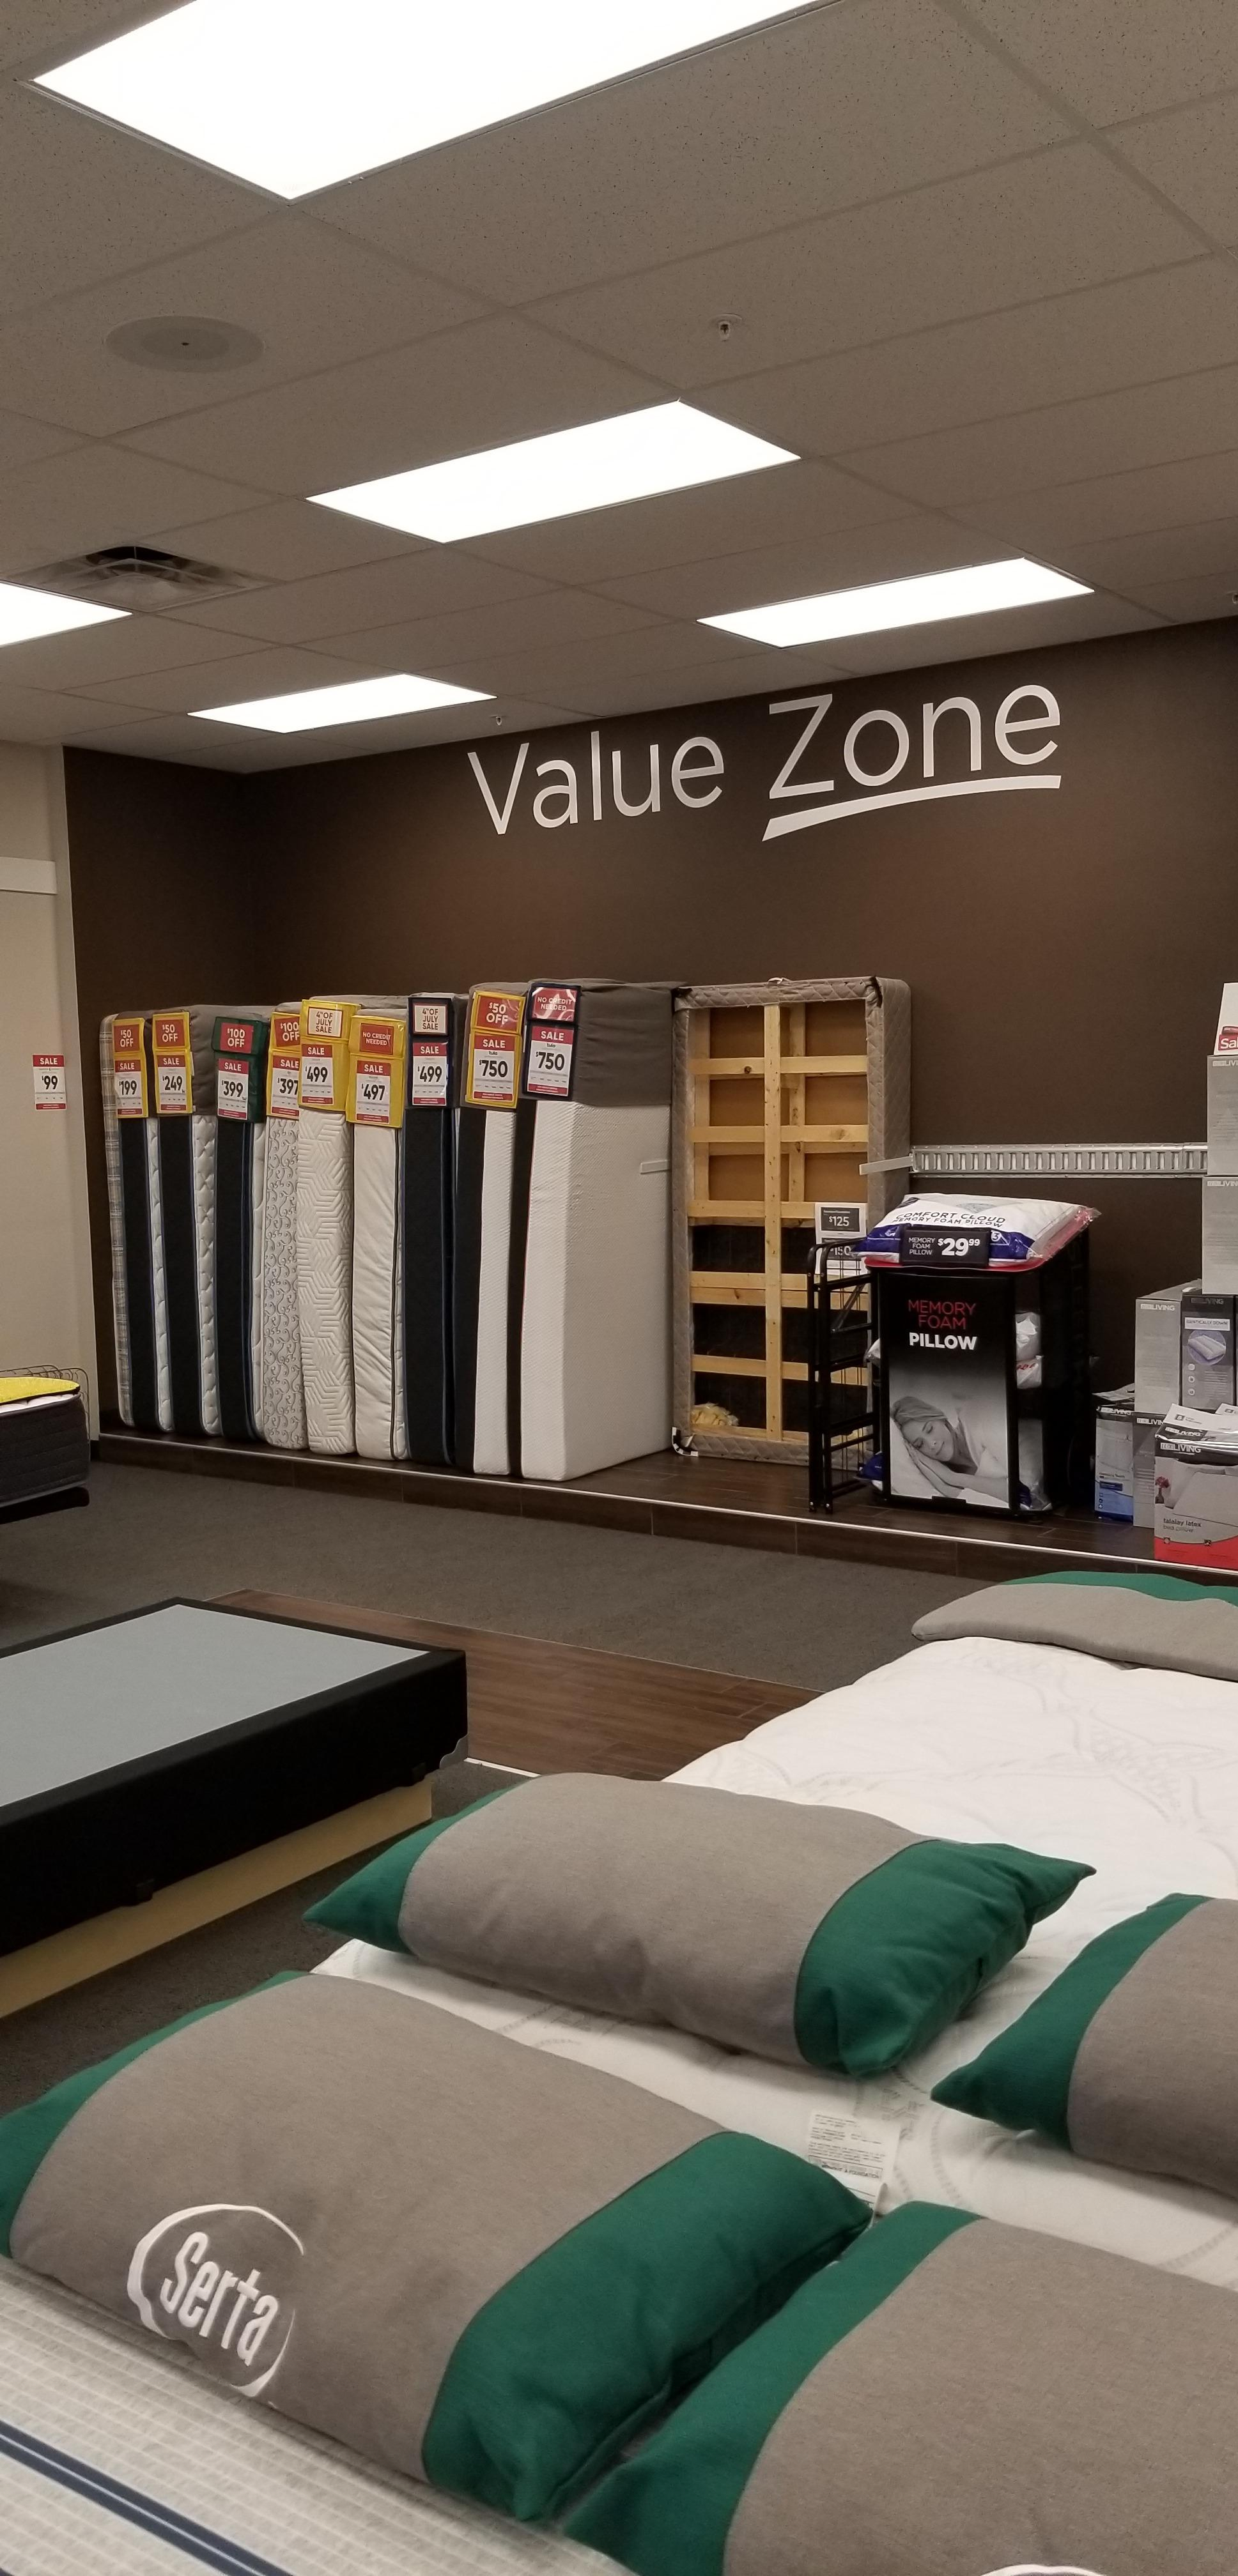 Mattress Firm Phoenix image 9